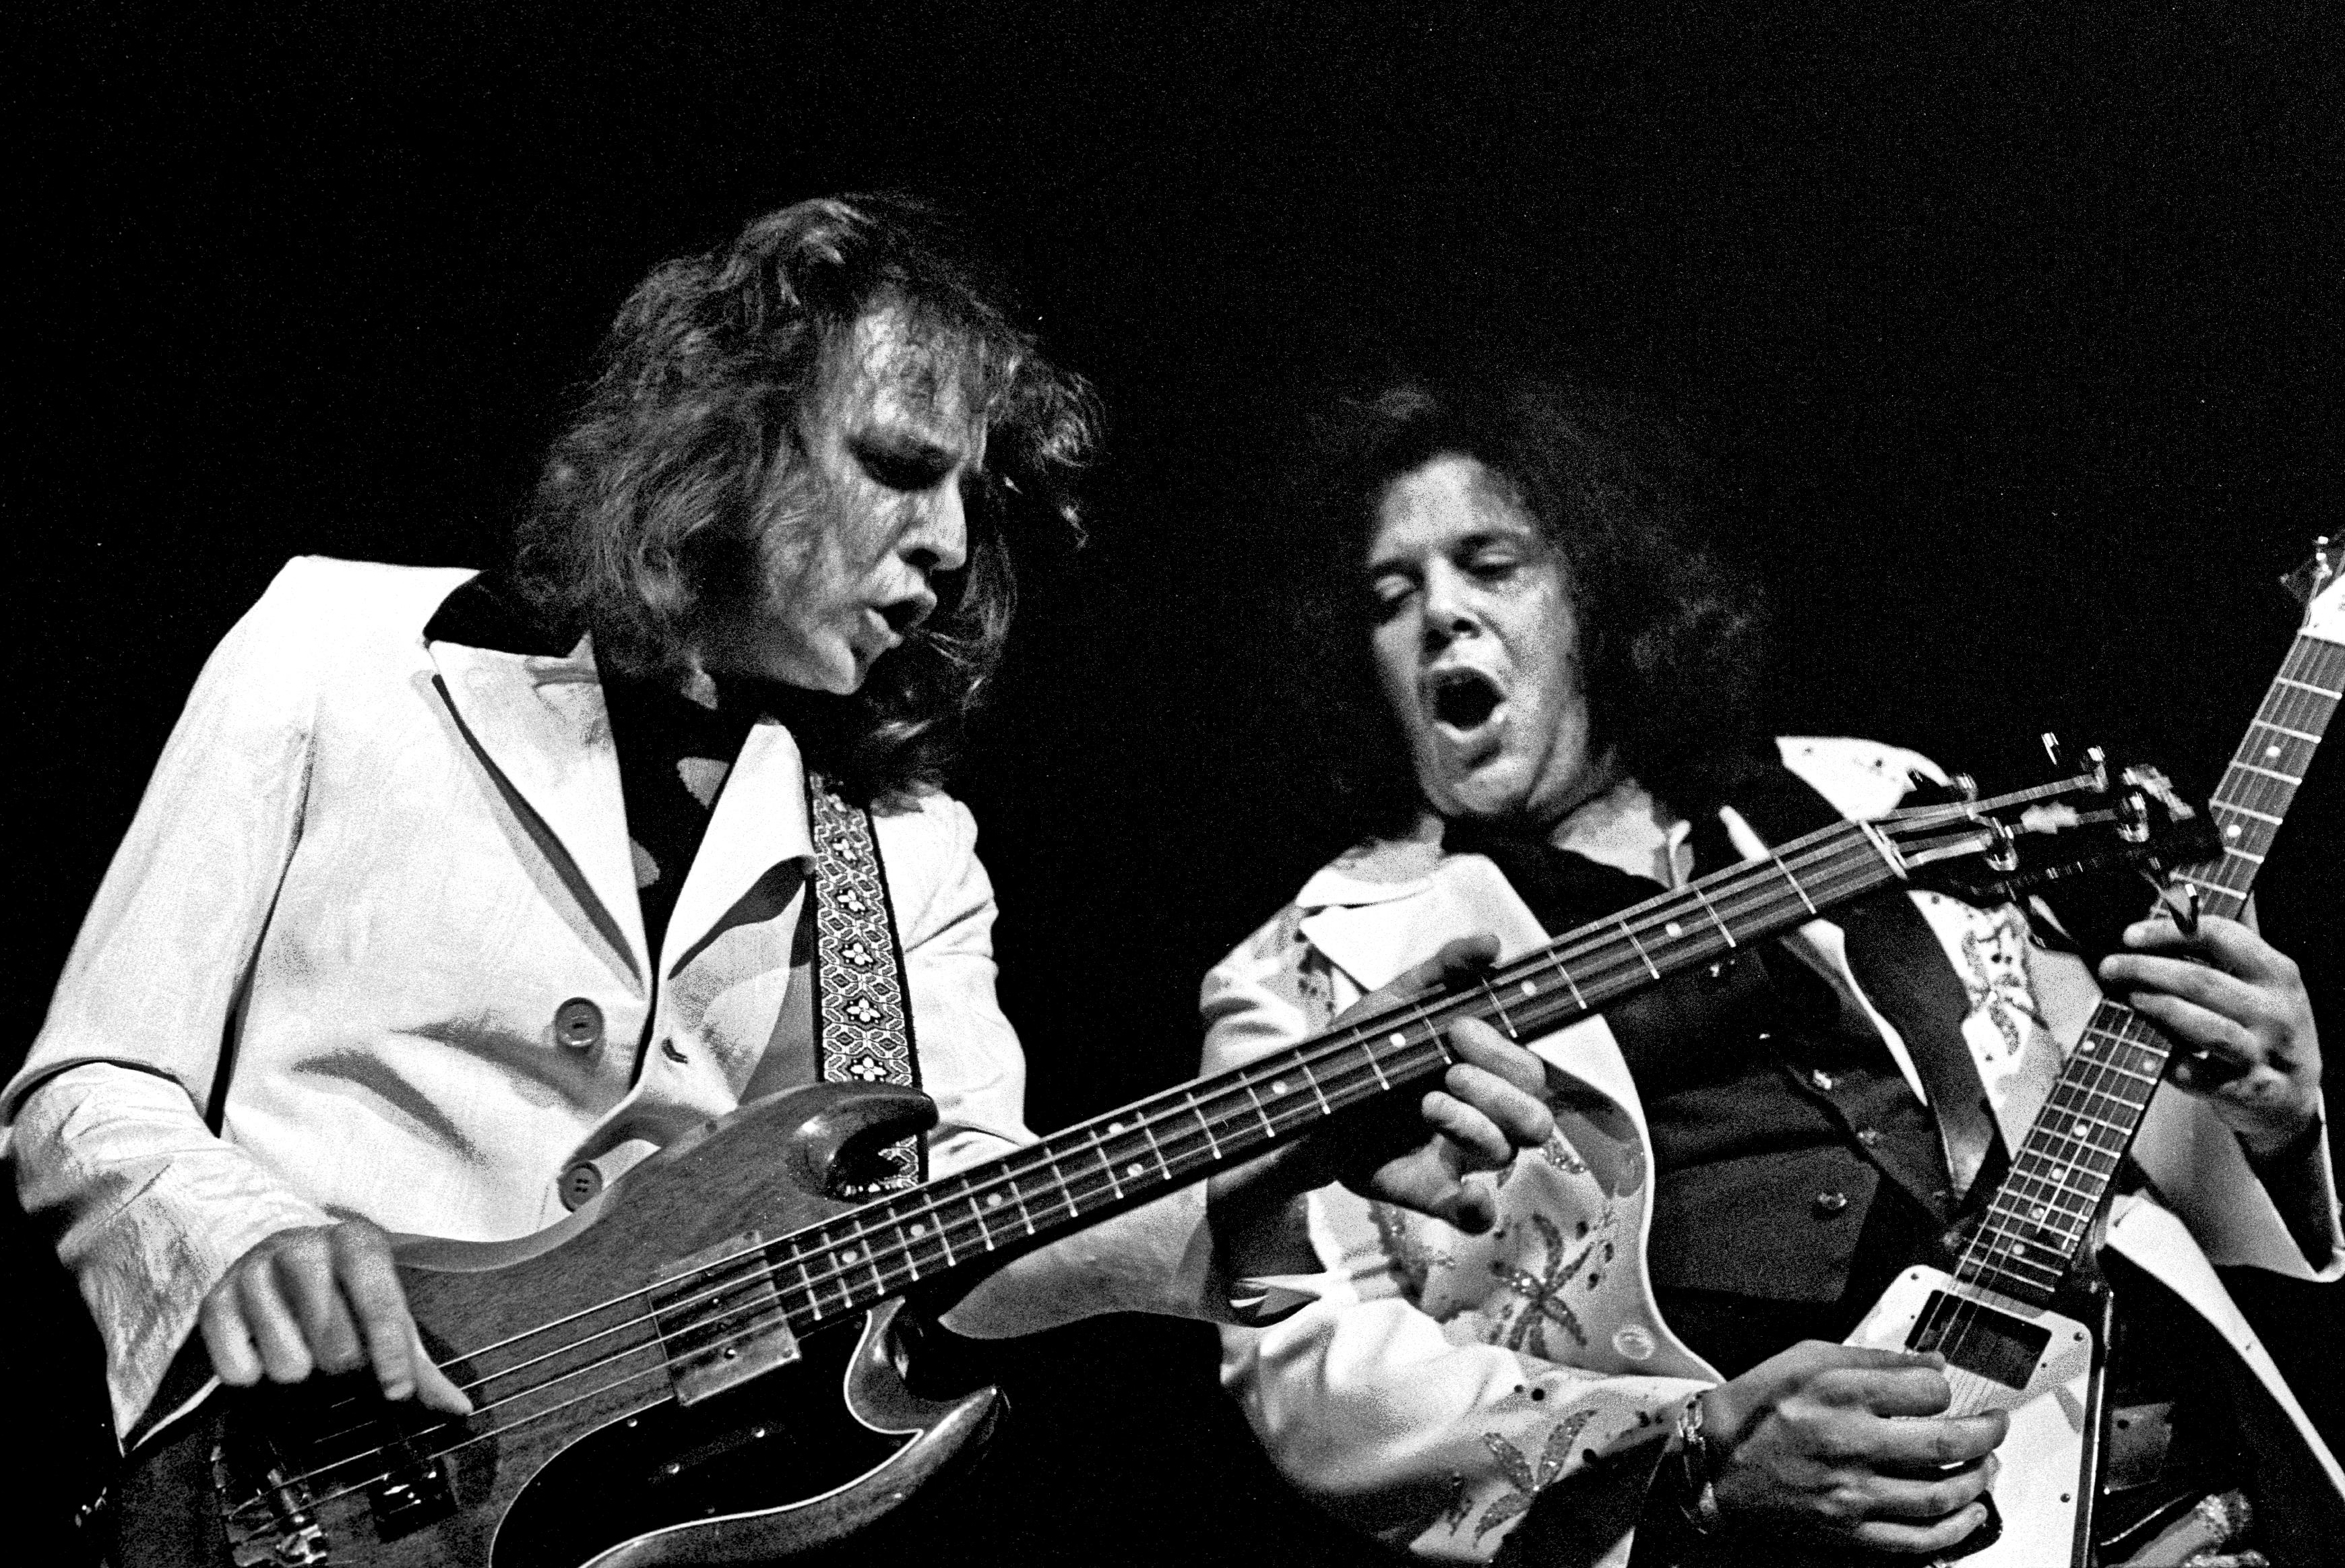 File:Jack Bruce and Leslie West.jpg - Wikimedia Commons